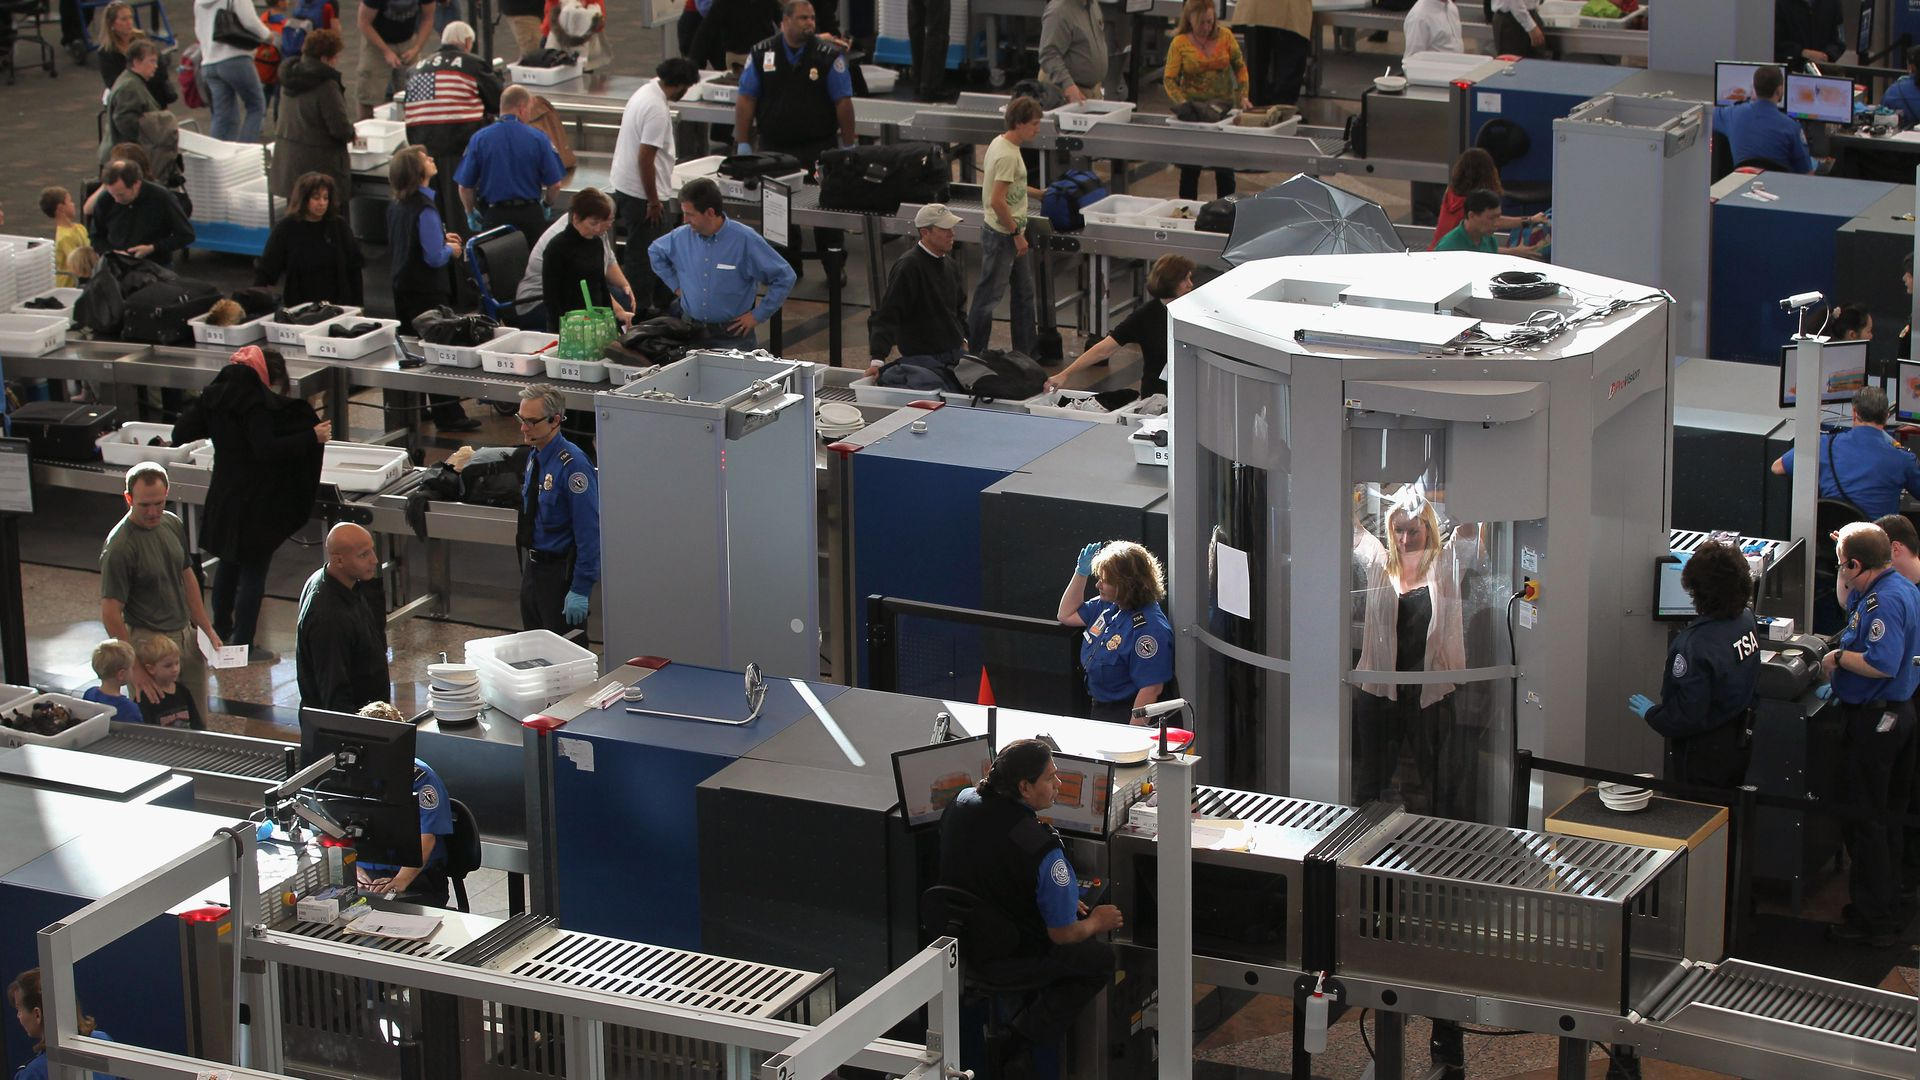 Travelers making their way through the Transportation Security Administration security checkpoint at the Denver International Airport. Photo: John Moore/Getty Images